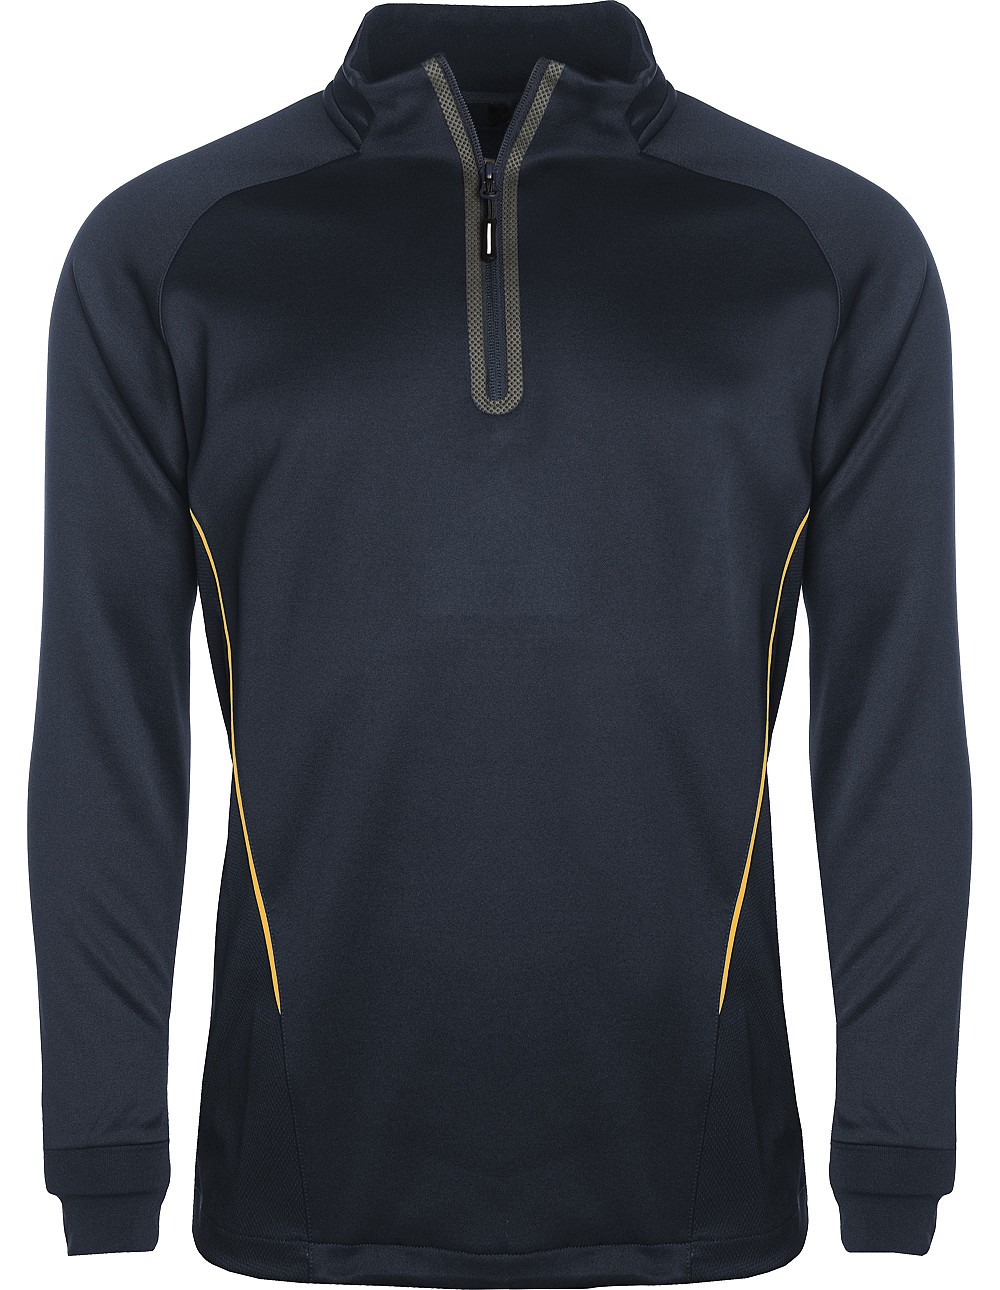 Qtr Zip Training Top